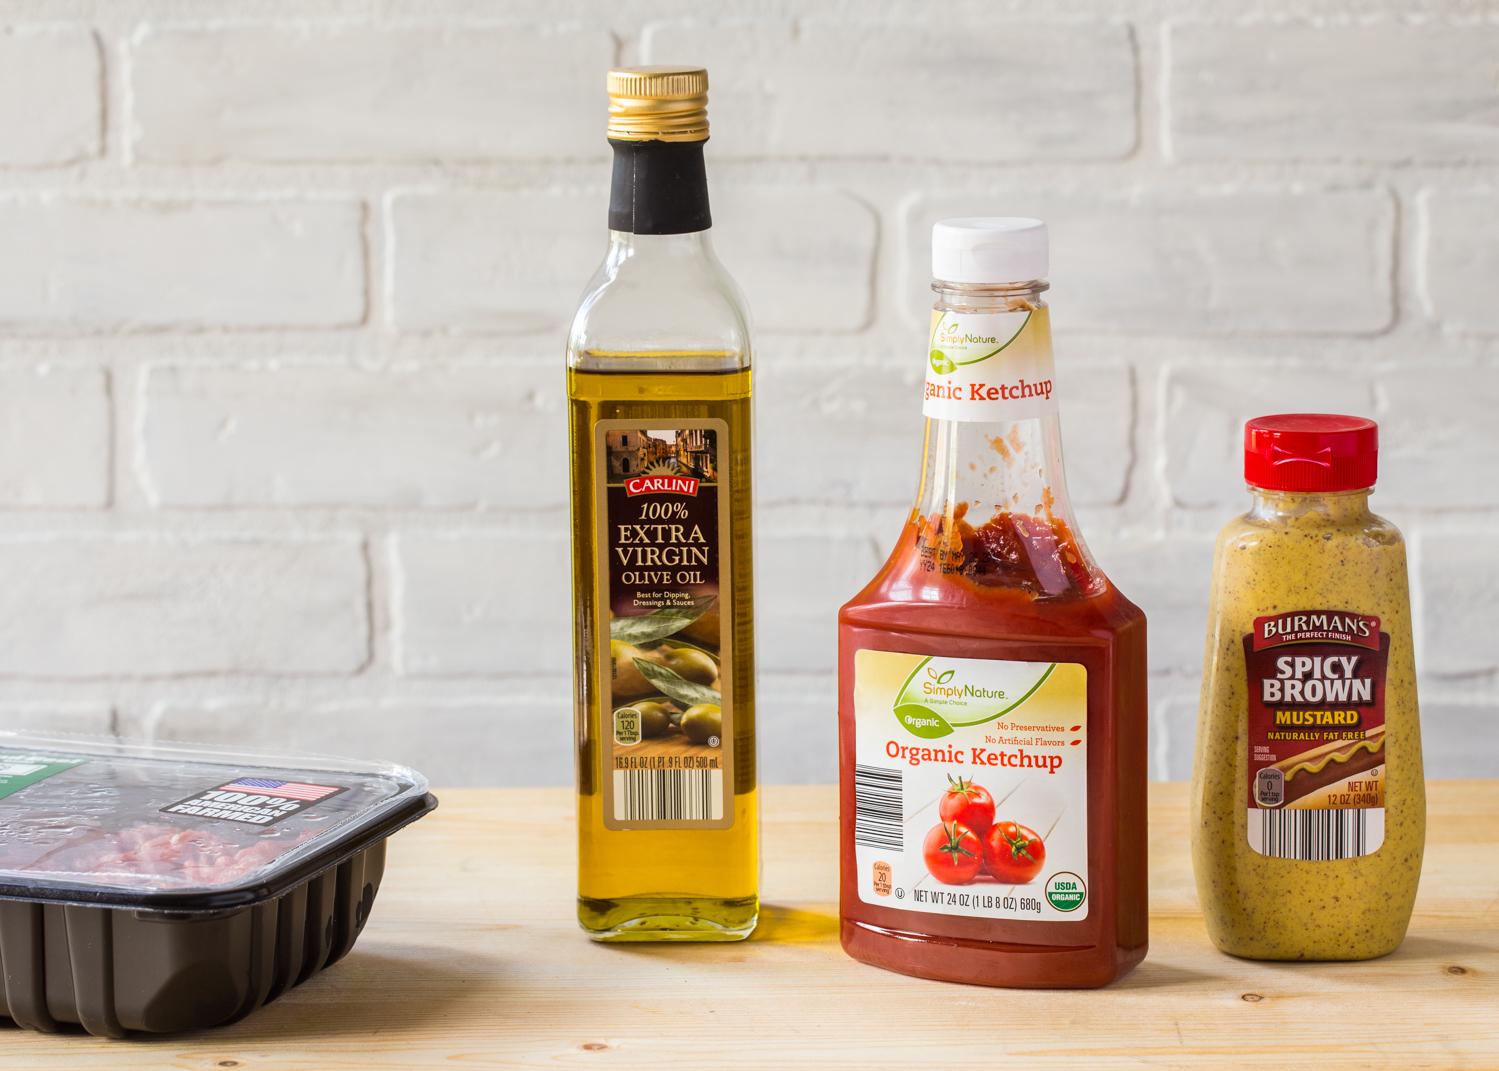 Fresh ingredients from ALDI for Homemade Hot Dog Toppings